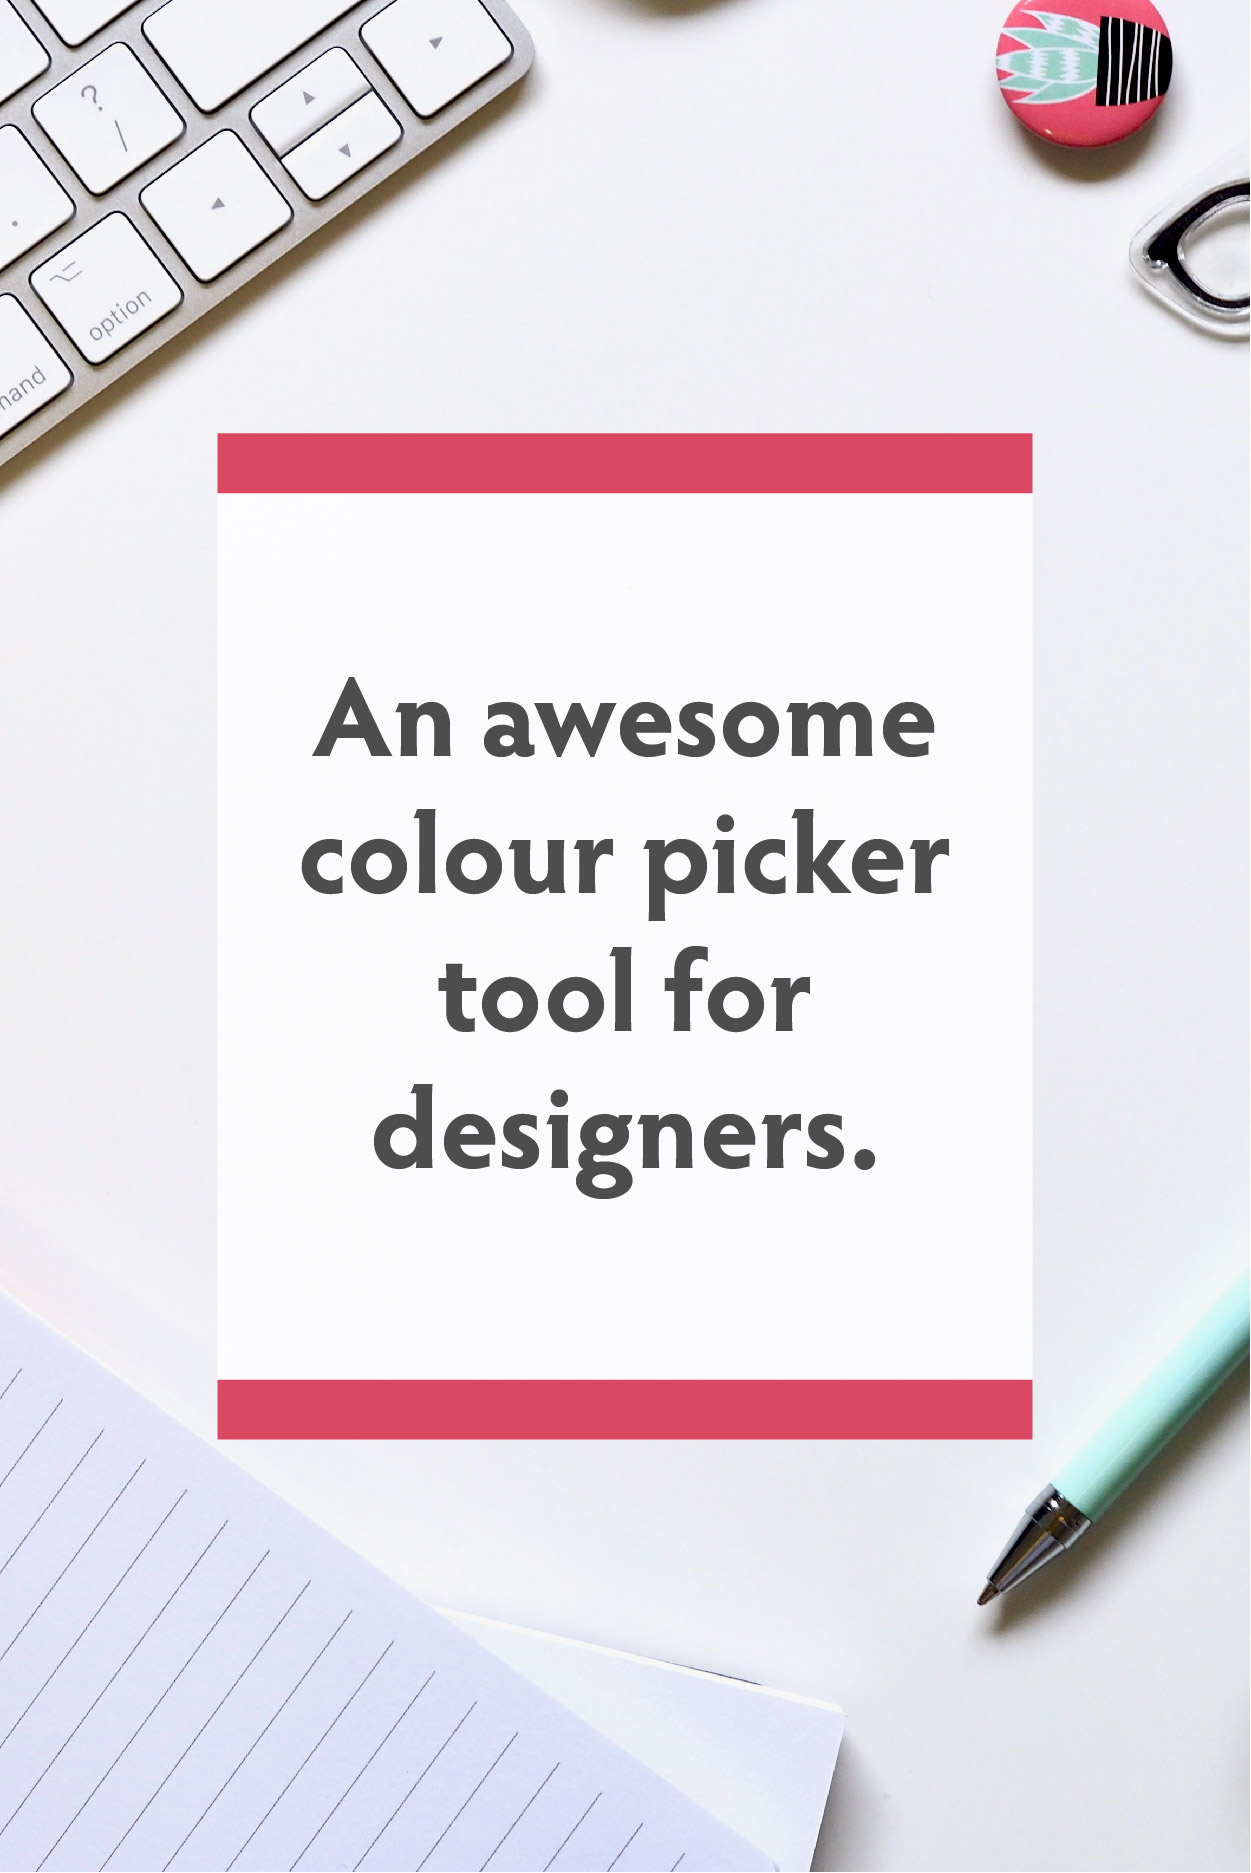 why you need to be using this awesome colour picker for your designs - designed by Jess.